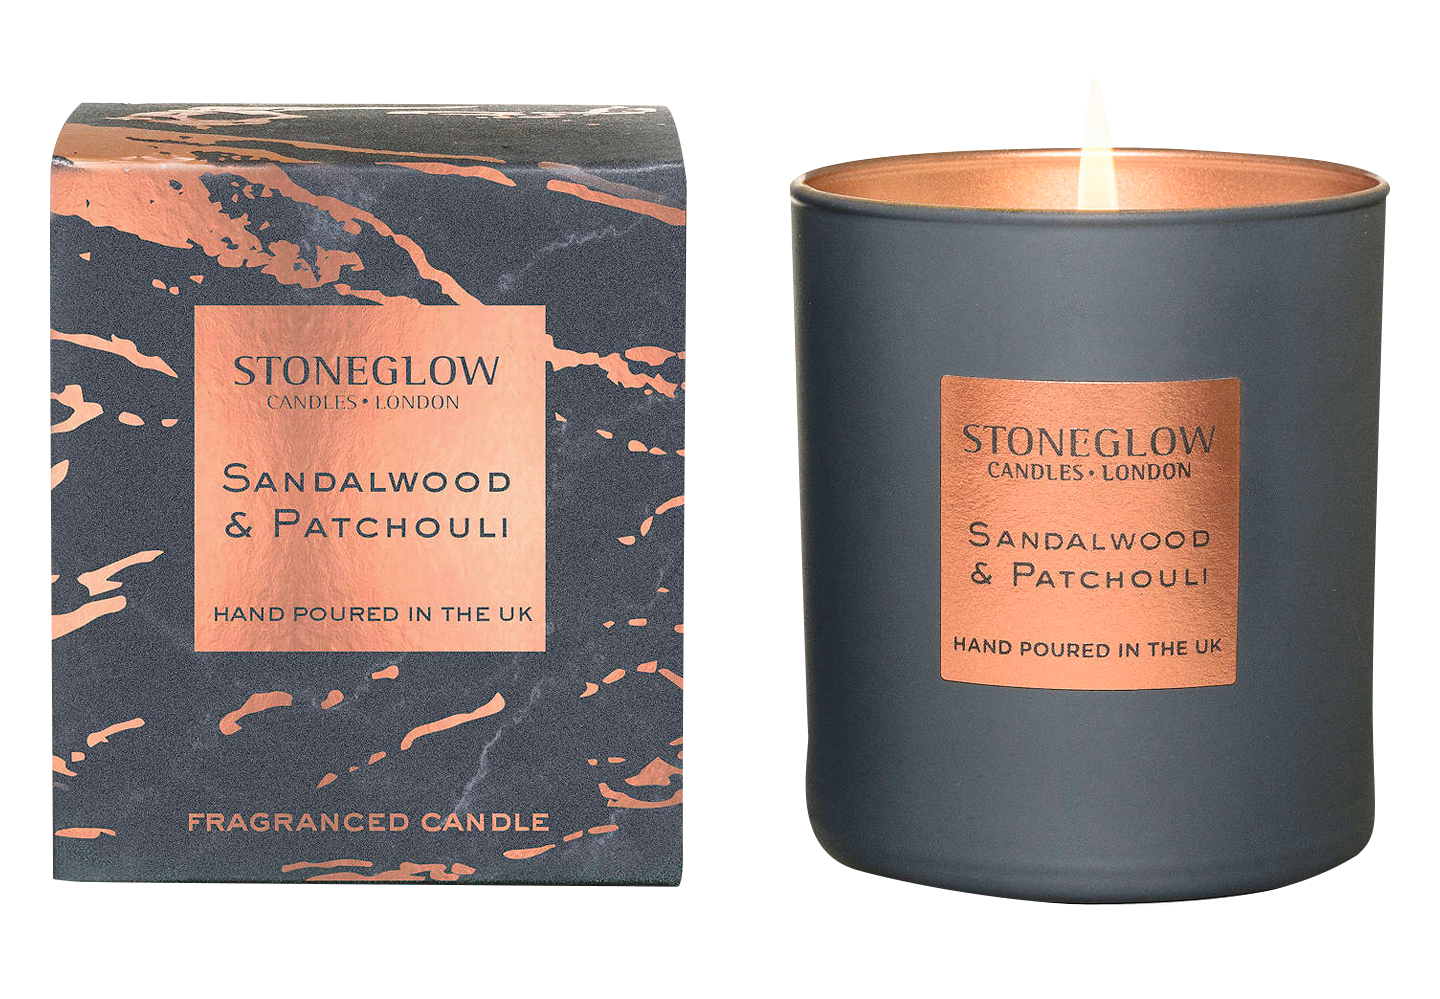 Stoneglow Luna Sandalwood & Patchouli Scented Candle